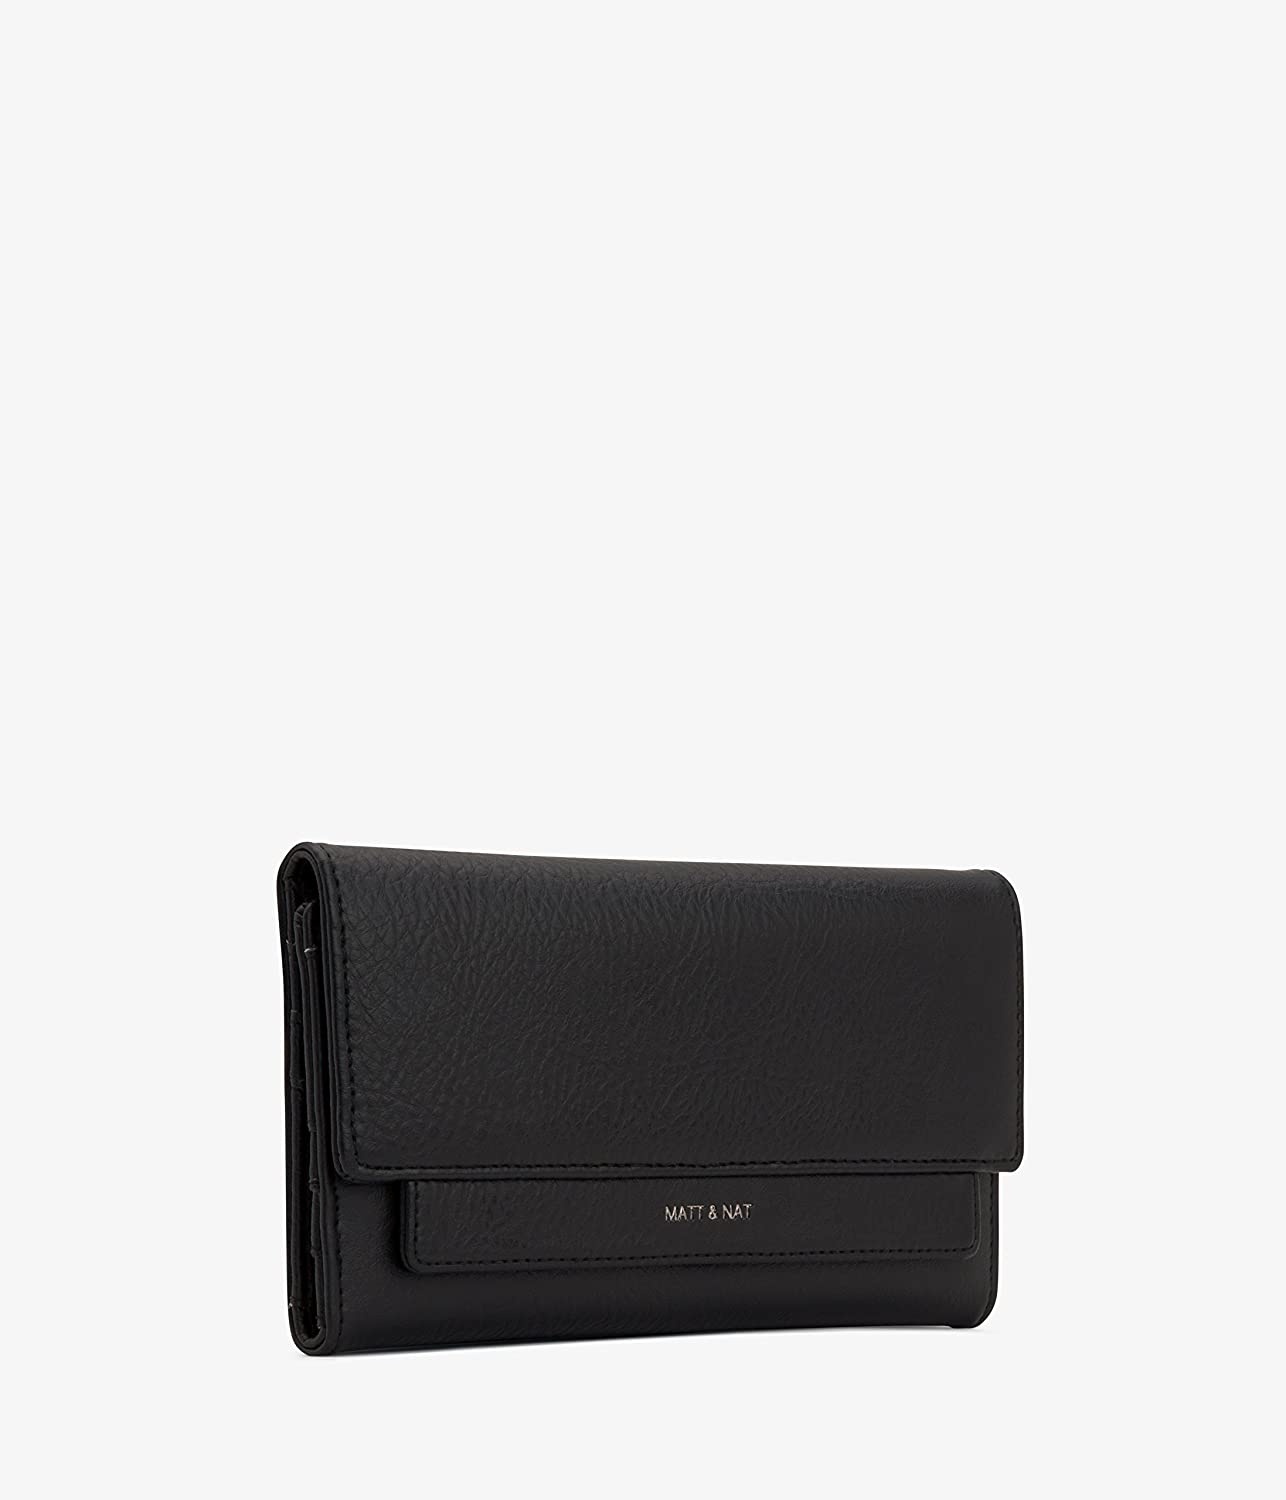 Matt and Nat Ilda Wallet Black